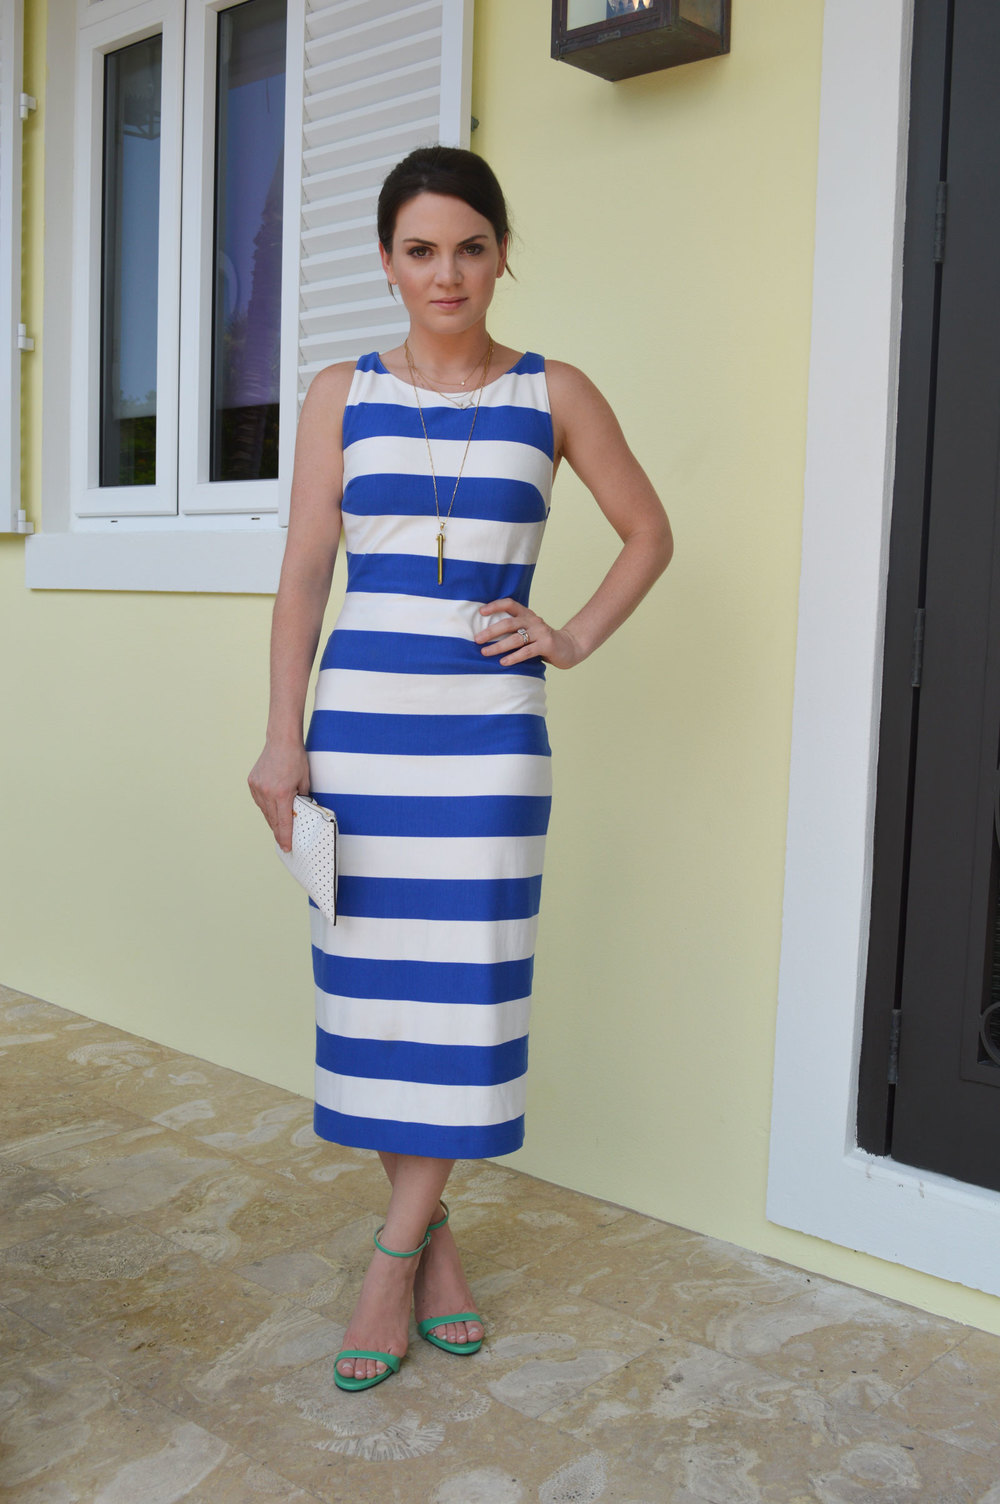 Blue-and-White-Zara-Dress-FromCtoC-Candace-Celmer-zara-heels-nassau-bahamas-style-lifestyle-blogger.jpeg